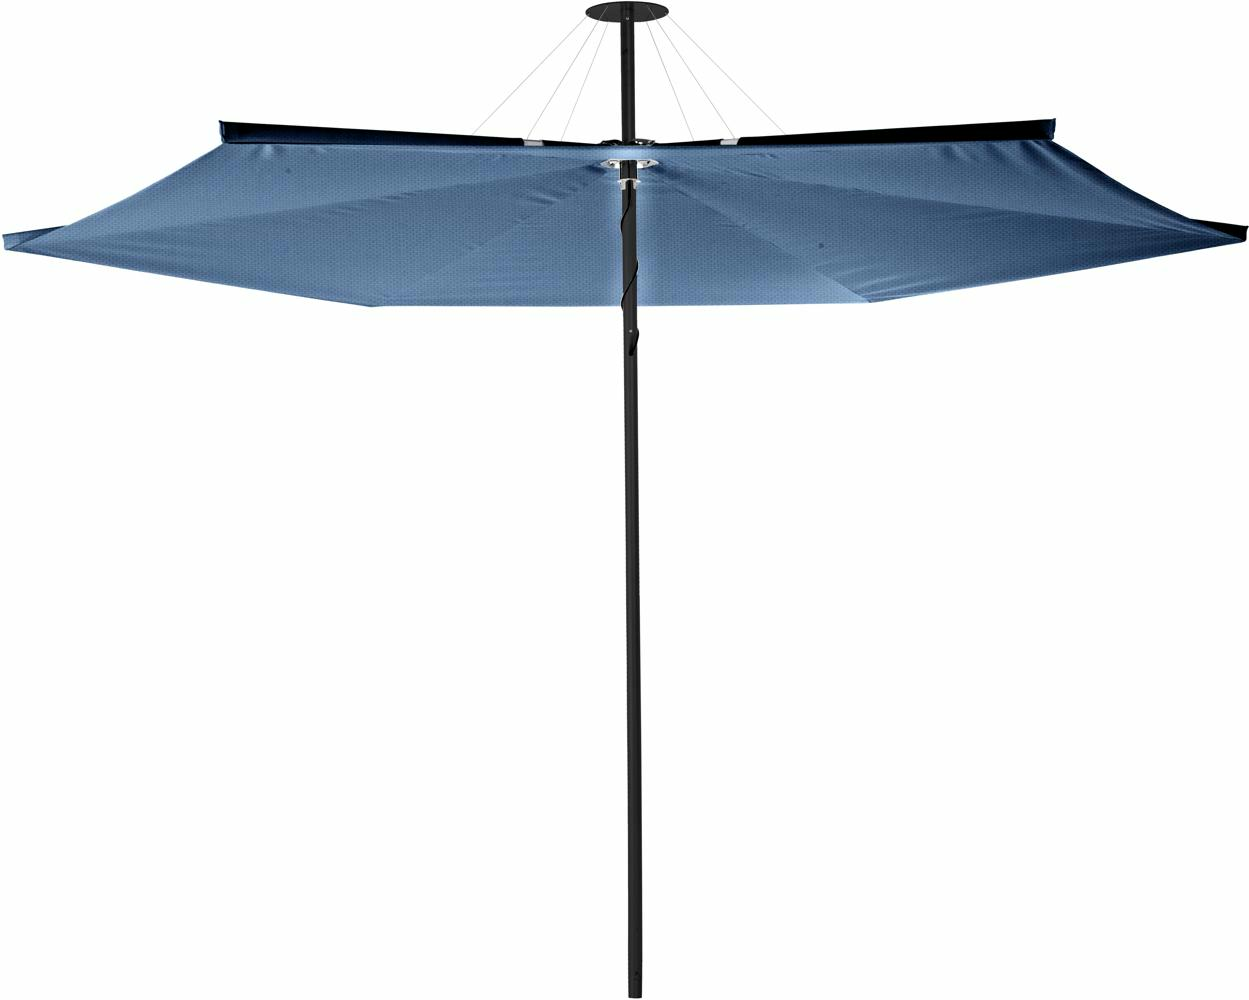 Infina center post umbrella, 3 m round, with frame in Dusk and Solidum BlueStorm canopy.